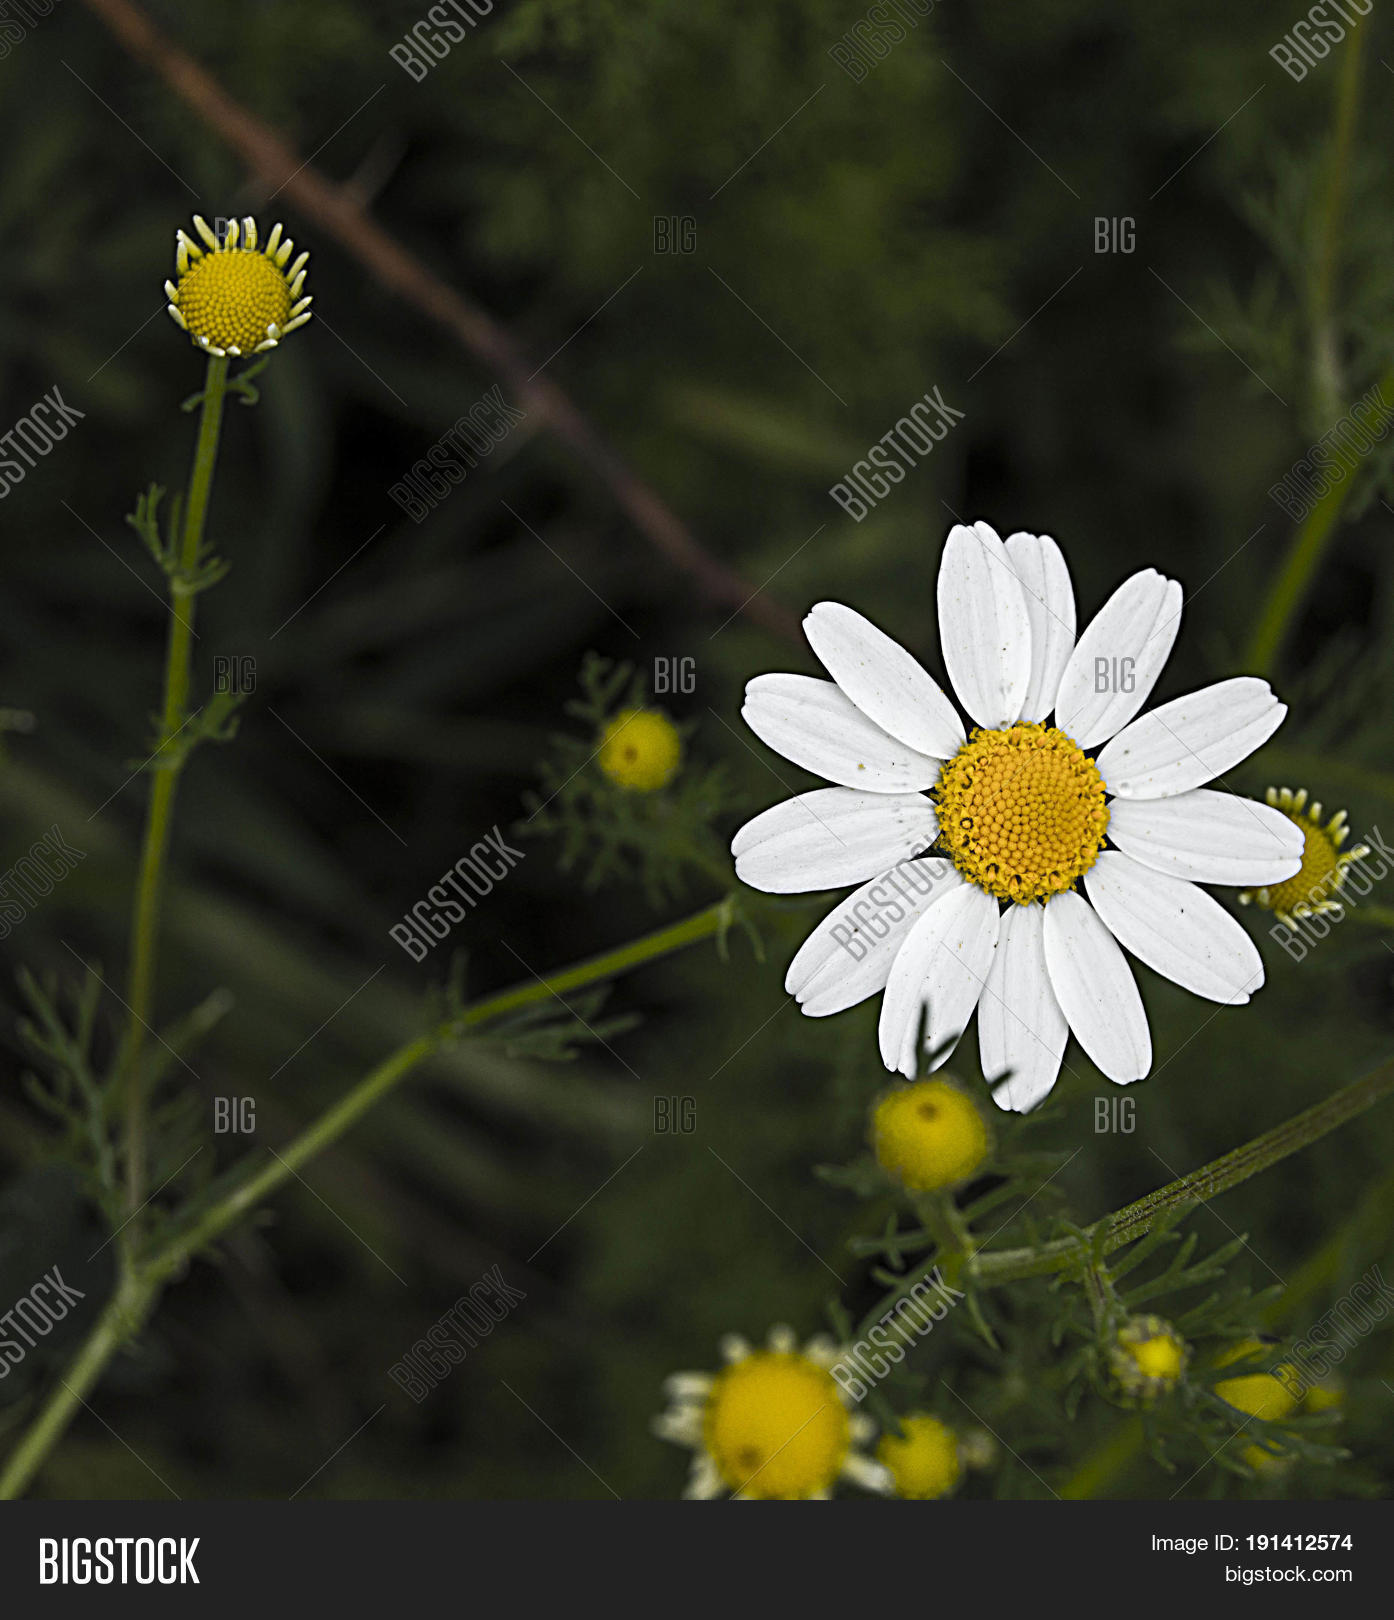 Daisy flowers pictures daisy image photo bigstock daisy flowers pictures of daisy flowers for lovers day the most wonderful natural daisies izmirmasajfo